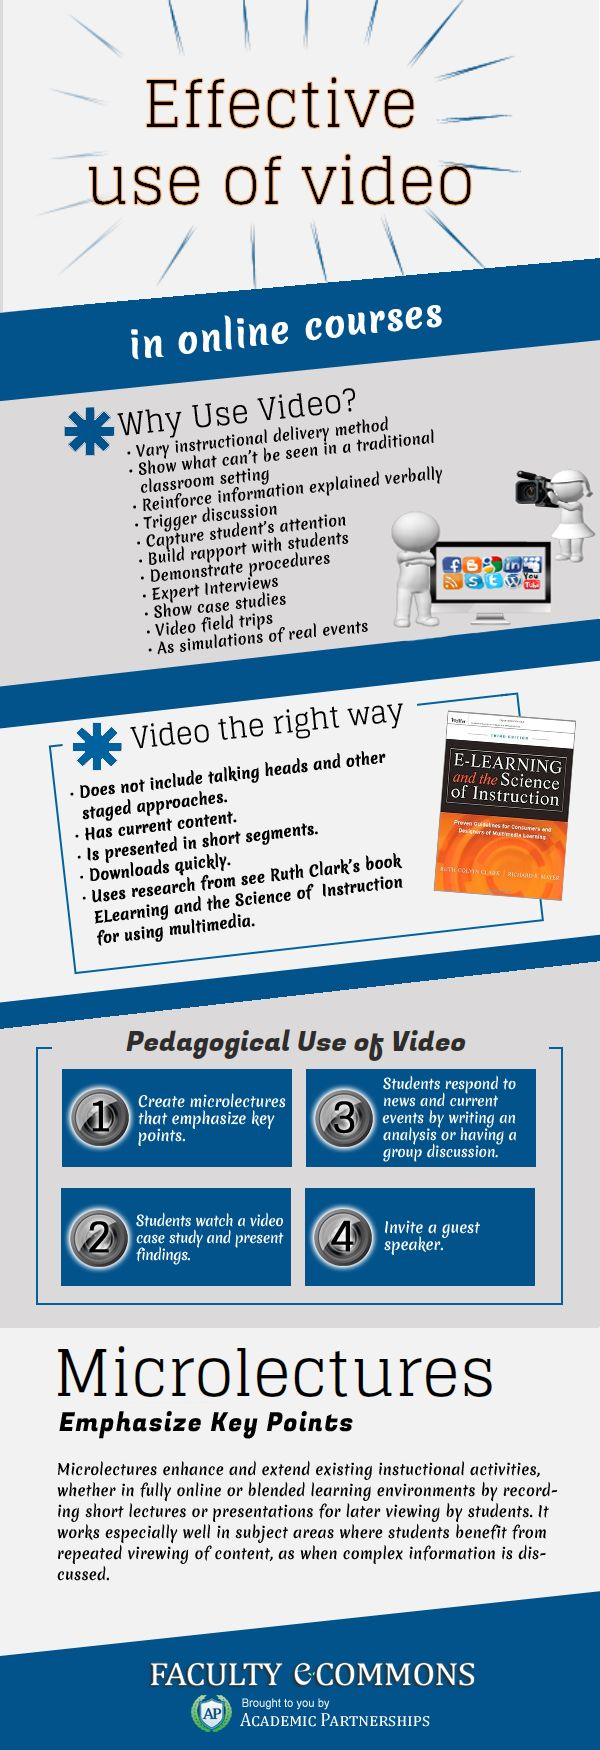 Effective use of videos in online courses #elearning #onlinelearning